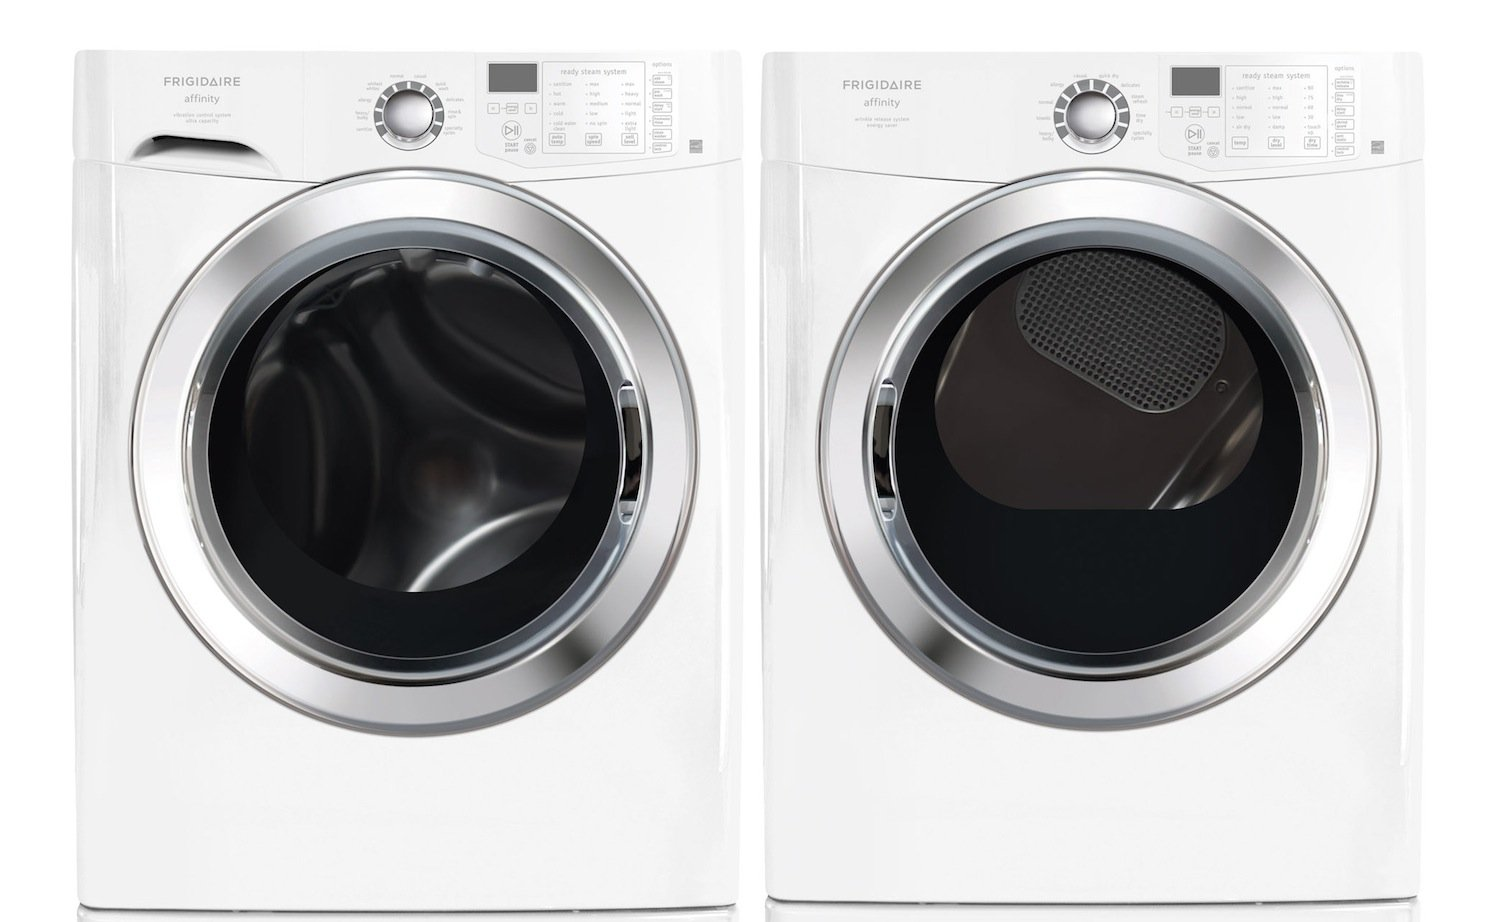 Amazon.com: Frigidaire Affinity White 3.9 Cu. Ft. Front Load Washer U0026 7.0  Cu. Ft. ELECTRIC Dryer W/Ready Steam FAFS4073NW_FASE7073NW: Appliances